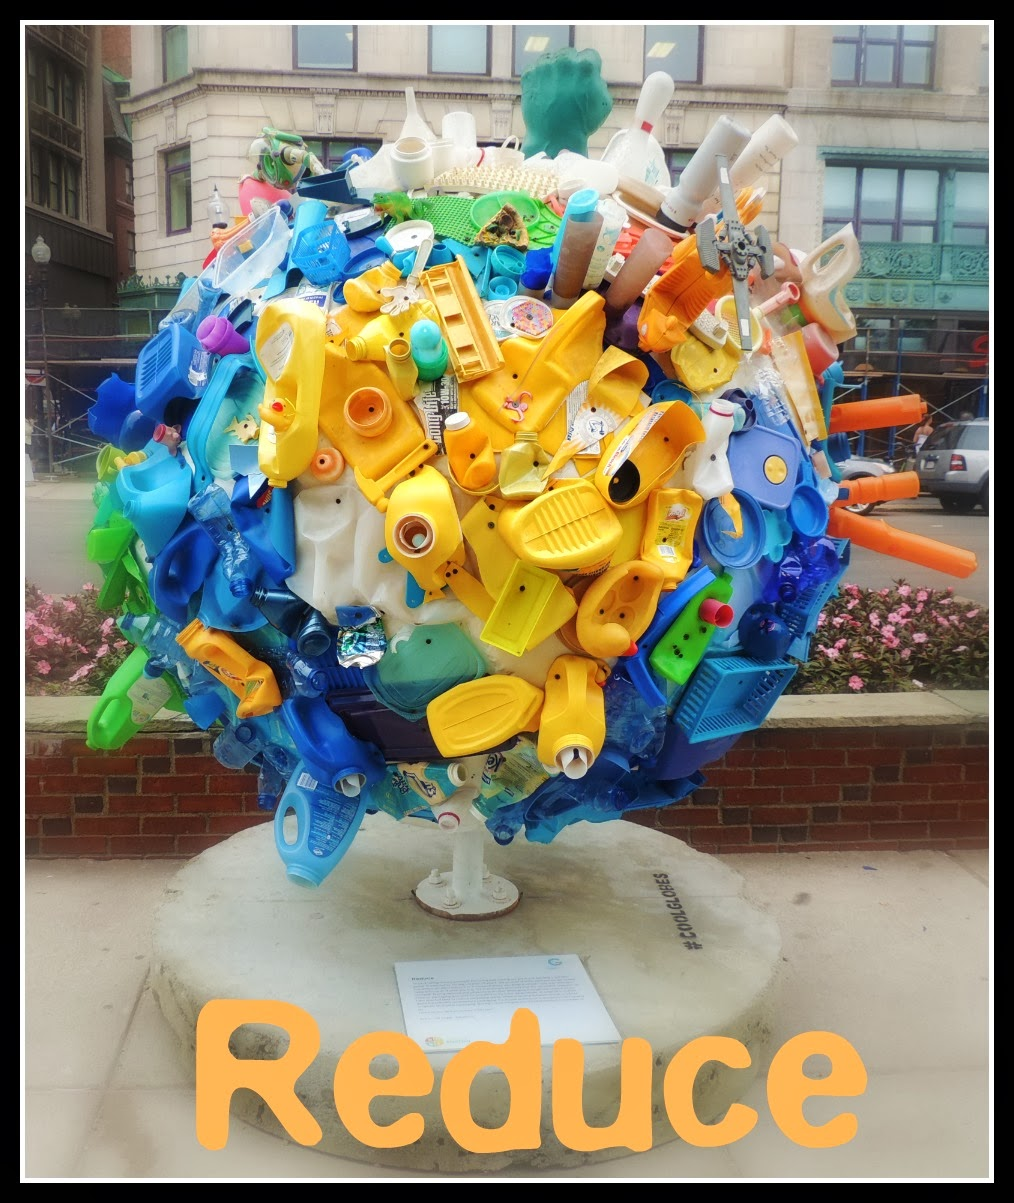 The Cool Globes en Boston: Reduce